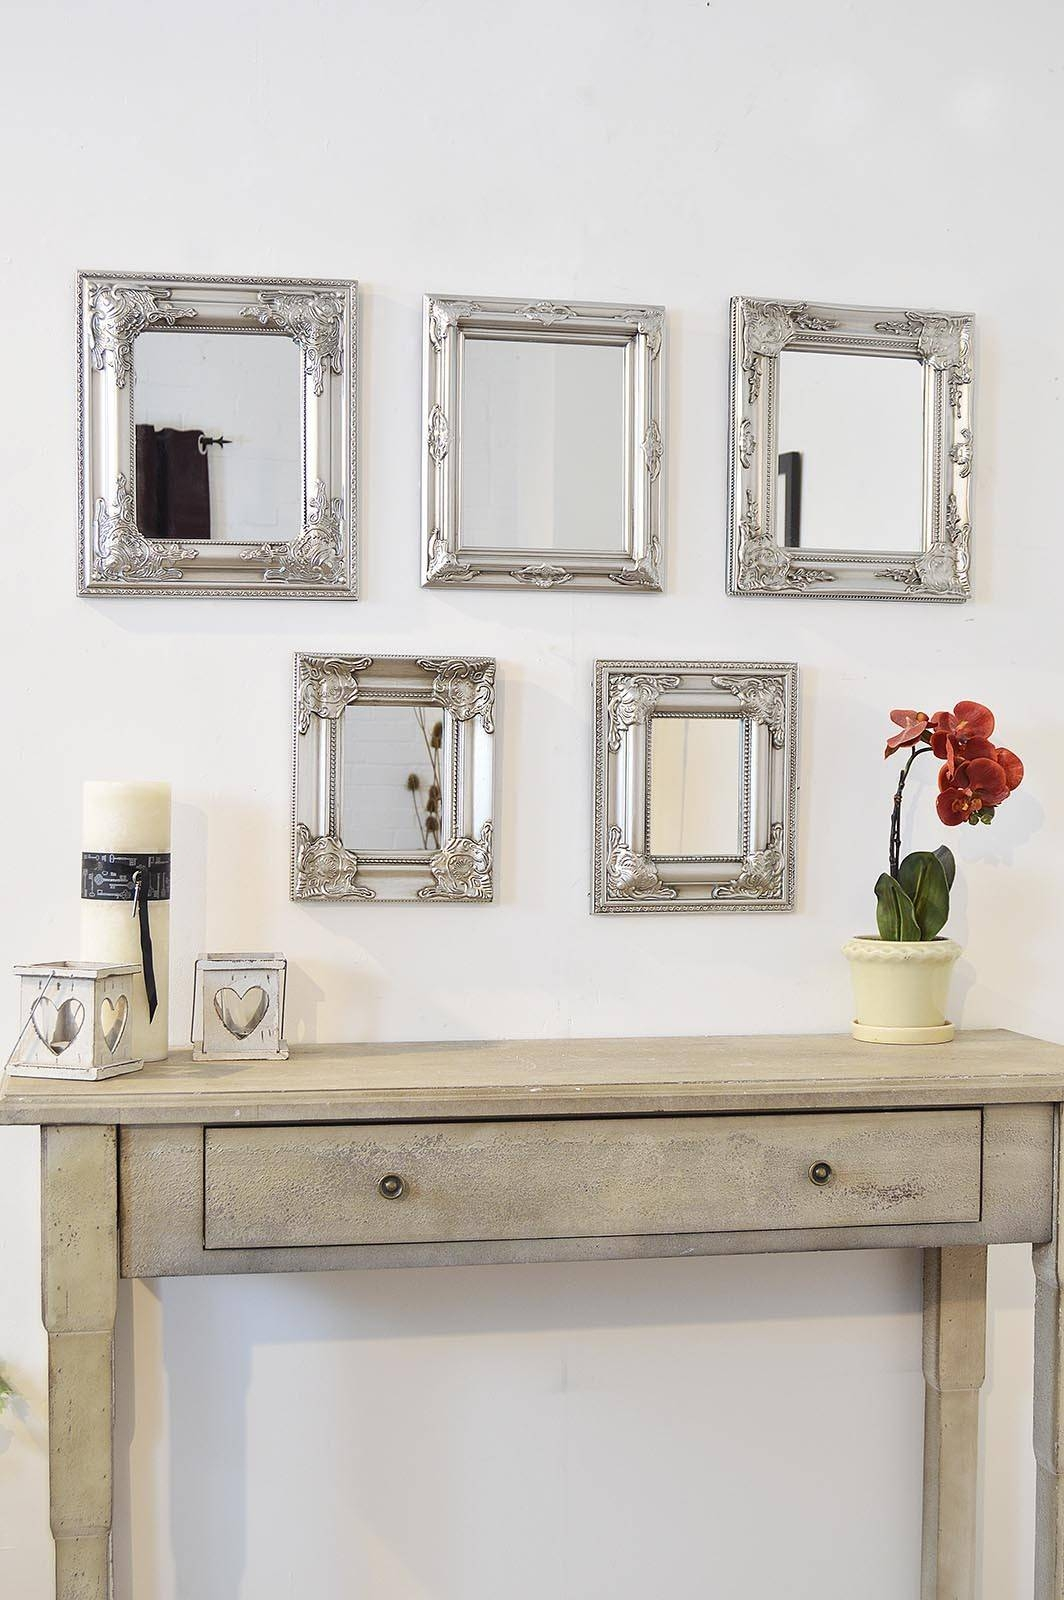 Set Of Mirrors For Wall 38 Breathtaking Decor Plus Round Gold throughout Antique Style Wall Mirrors (Image 22 of 25)